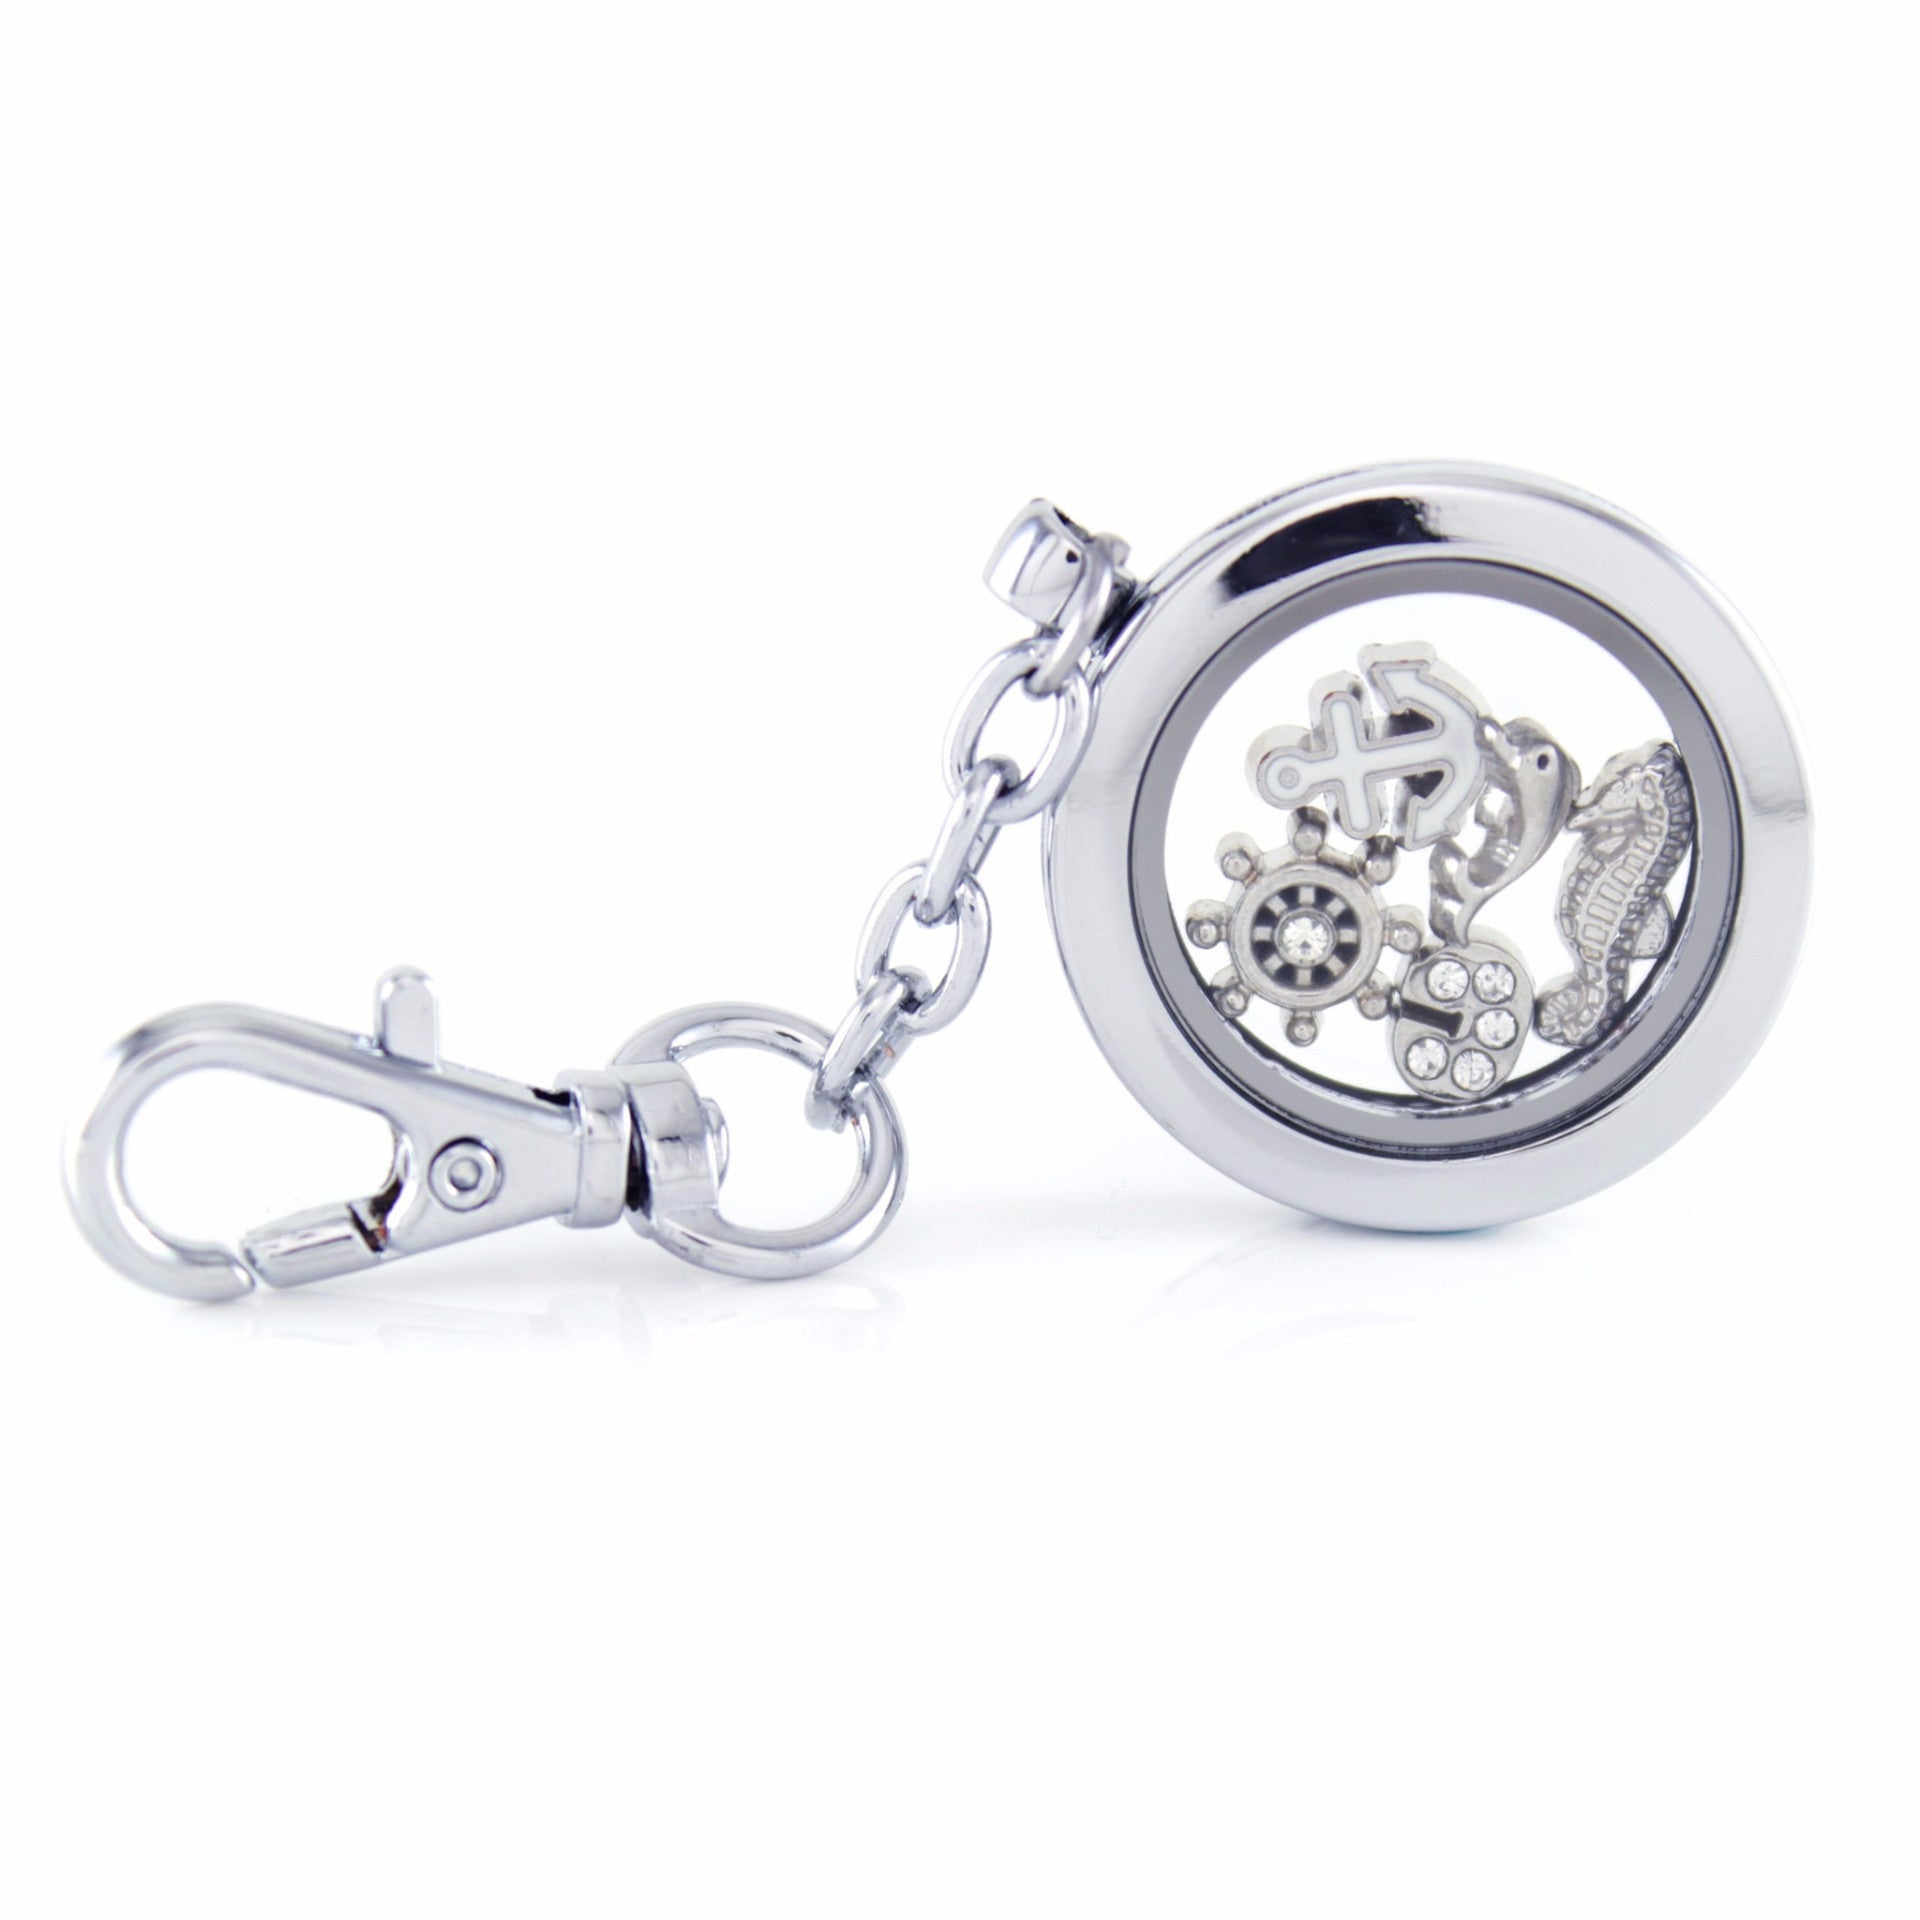 Silver Floating Locket Key Chain with Lobster Claw and Choice of 4 Mini Charms